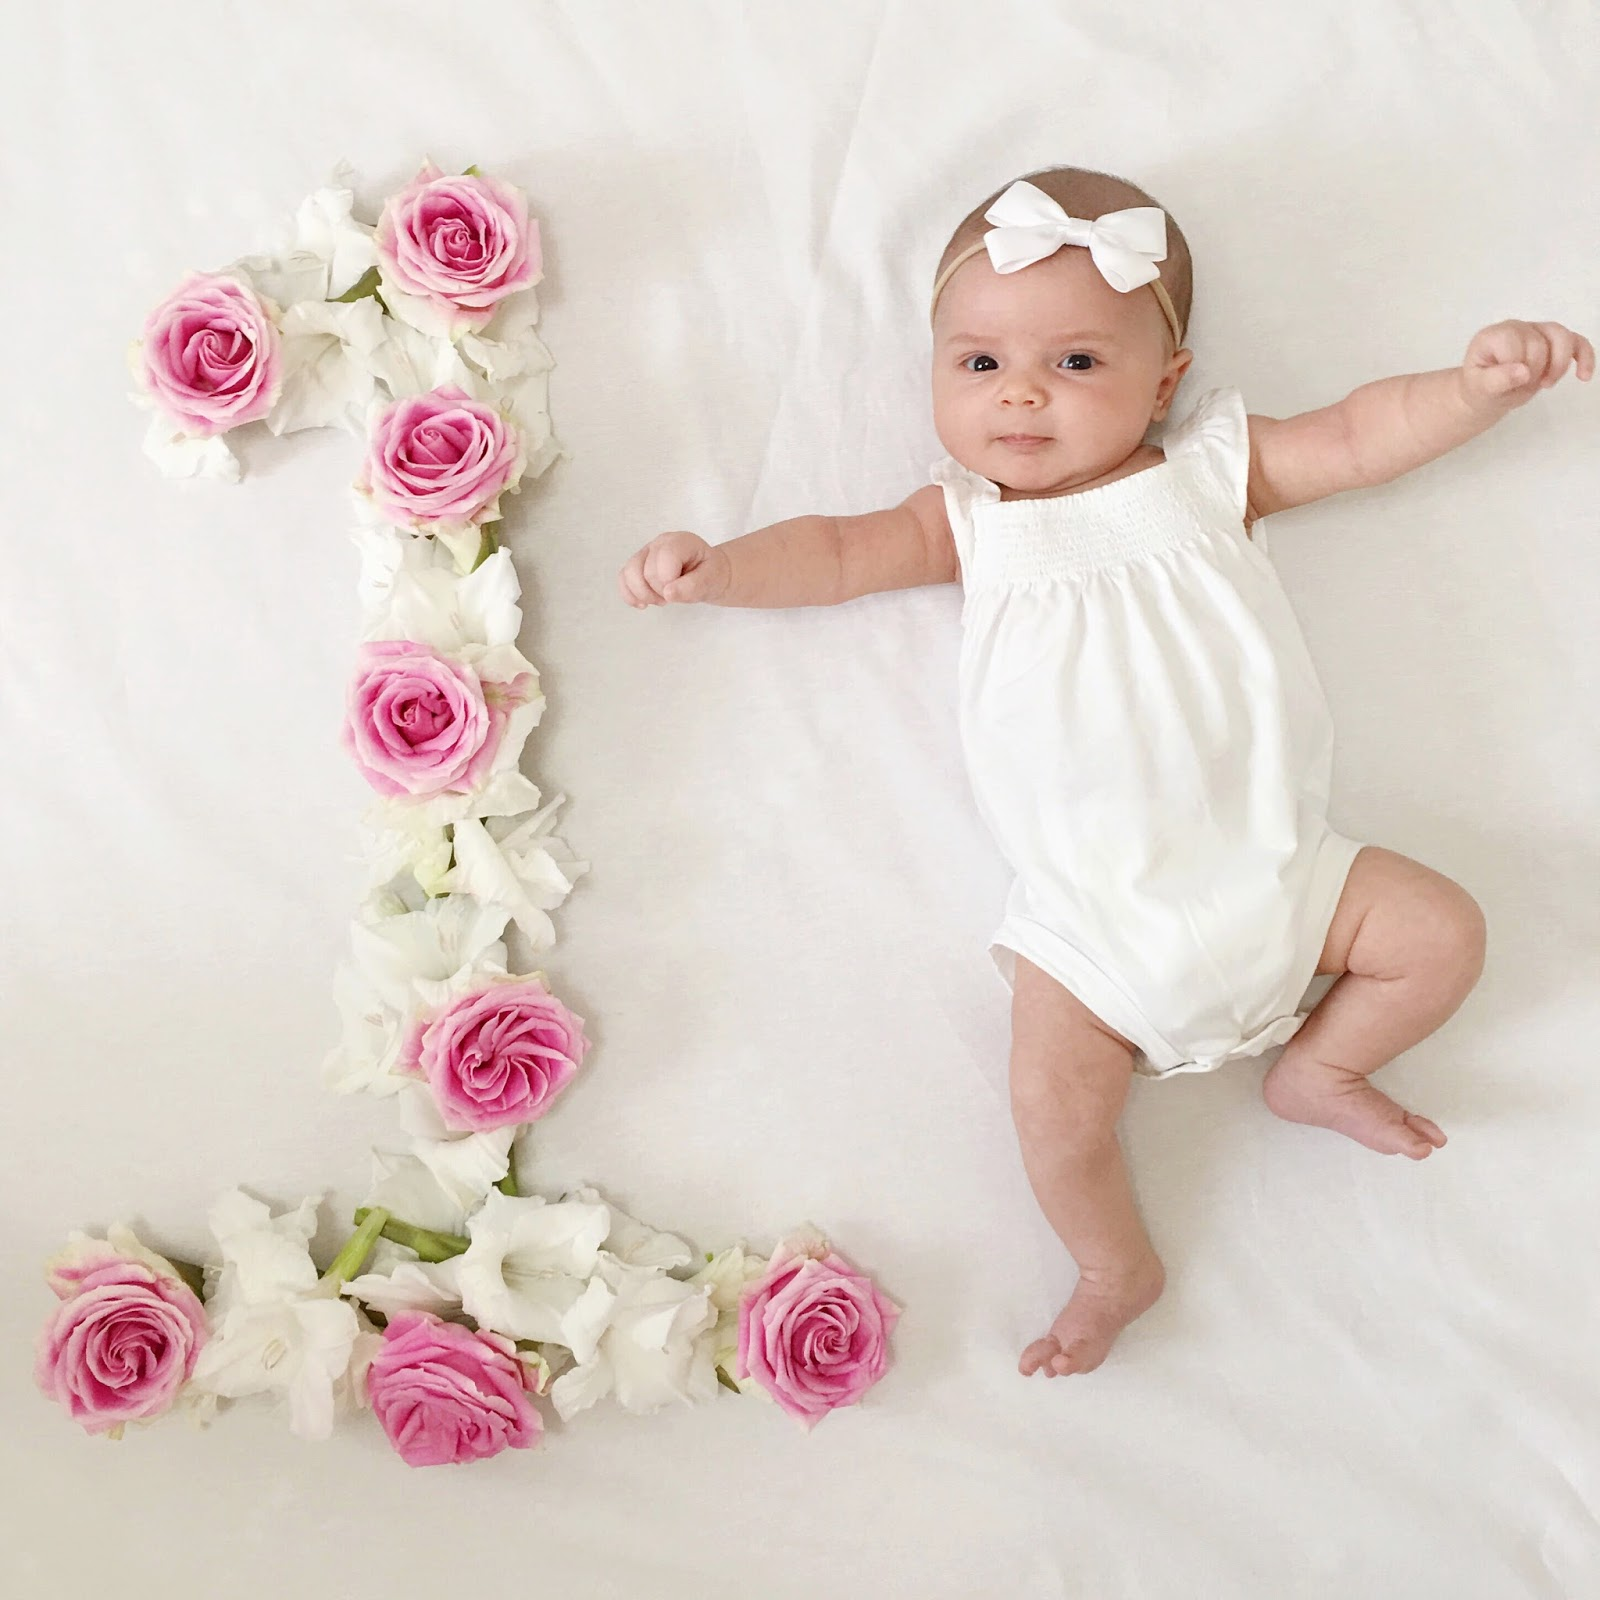 Happy 1 Month Old Baby Girl Quotes: Scottie Rose: 1 Month Old